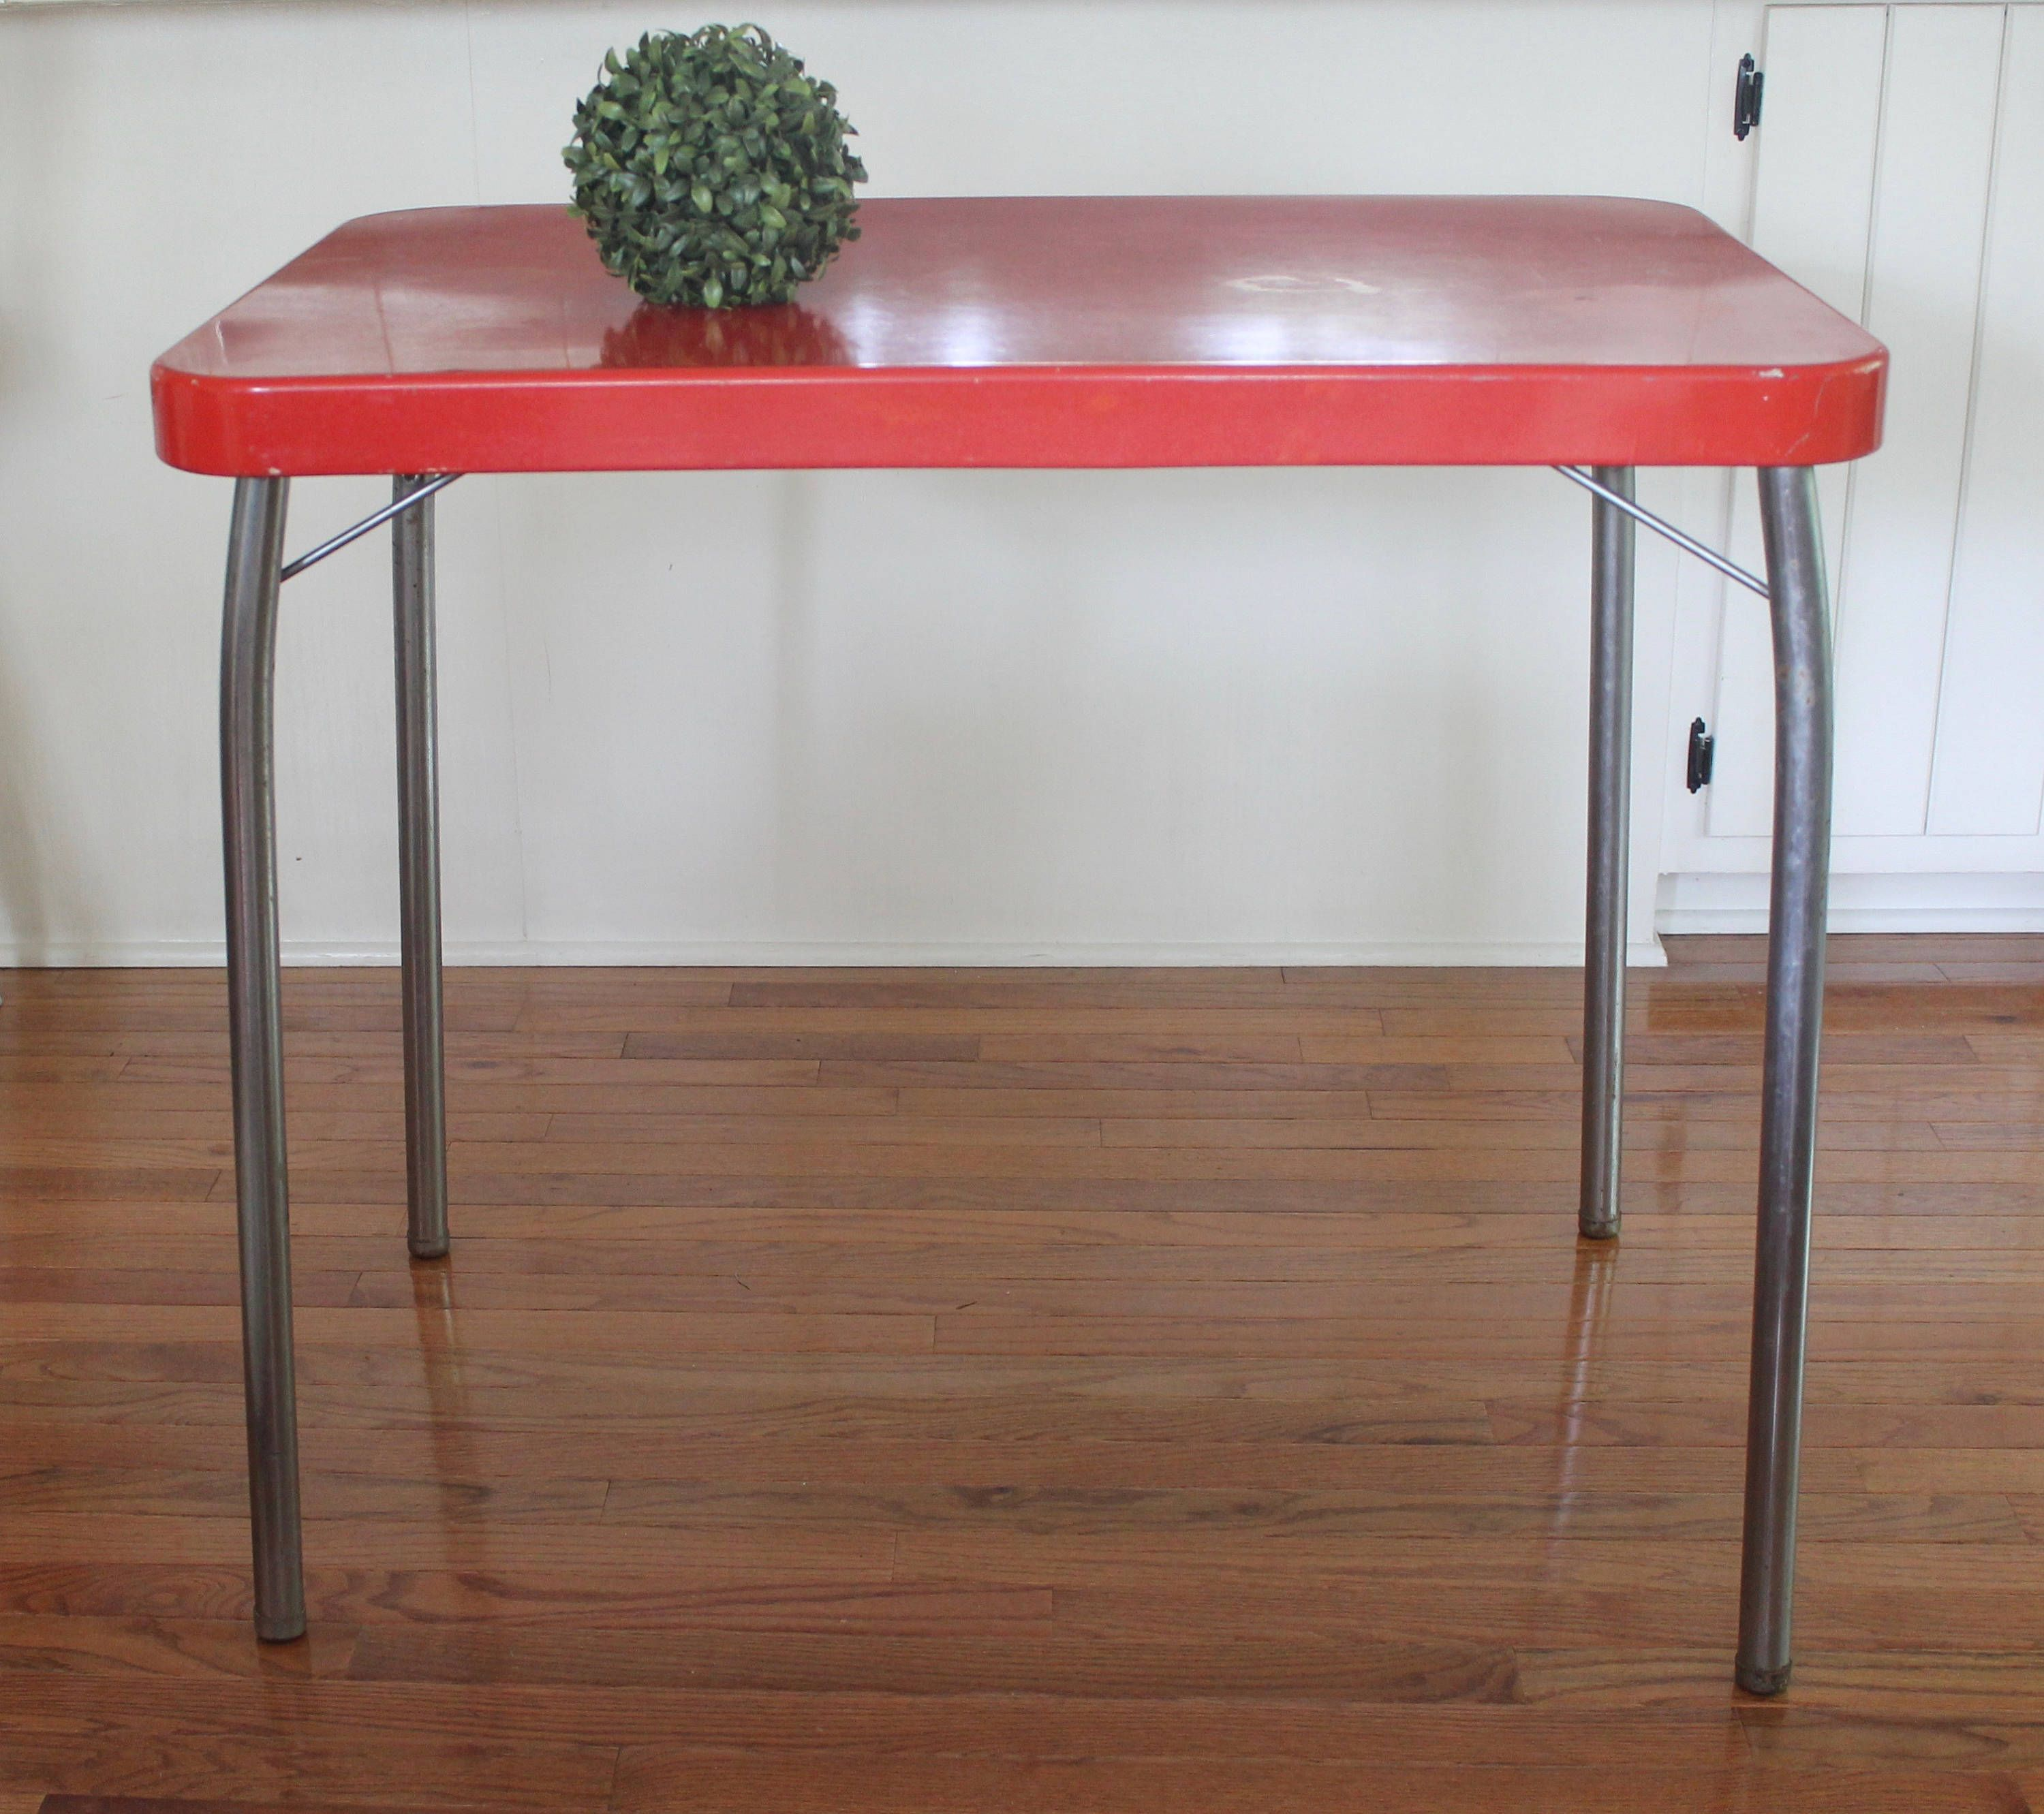 Rare Cosco Red Folding Table Vintage Cool Mid Century Red And